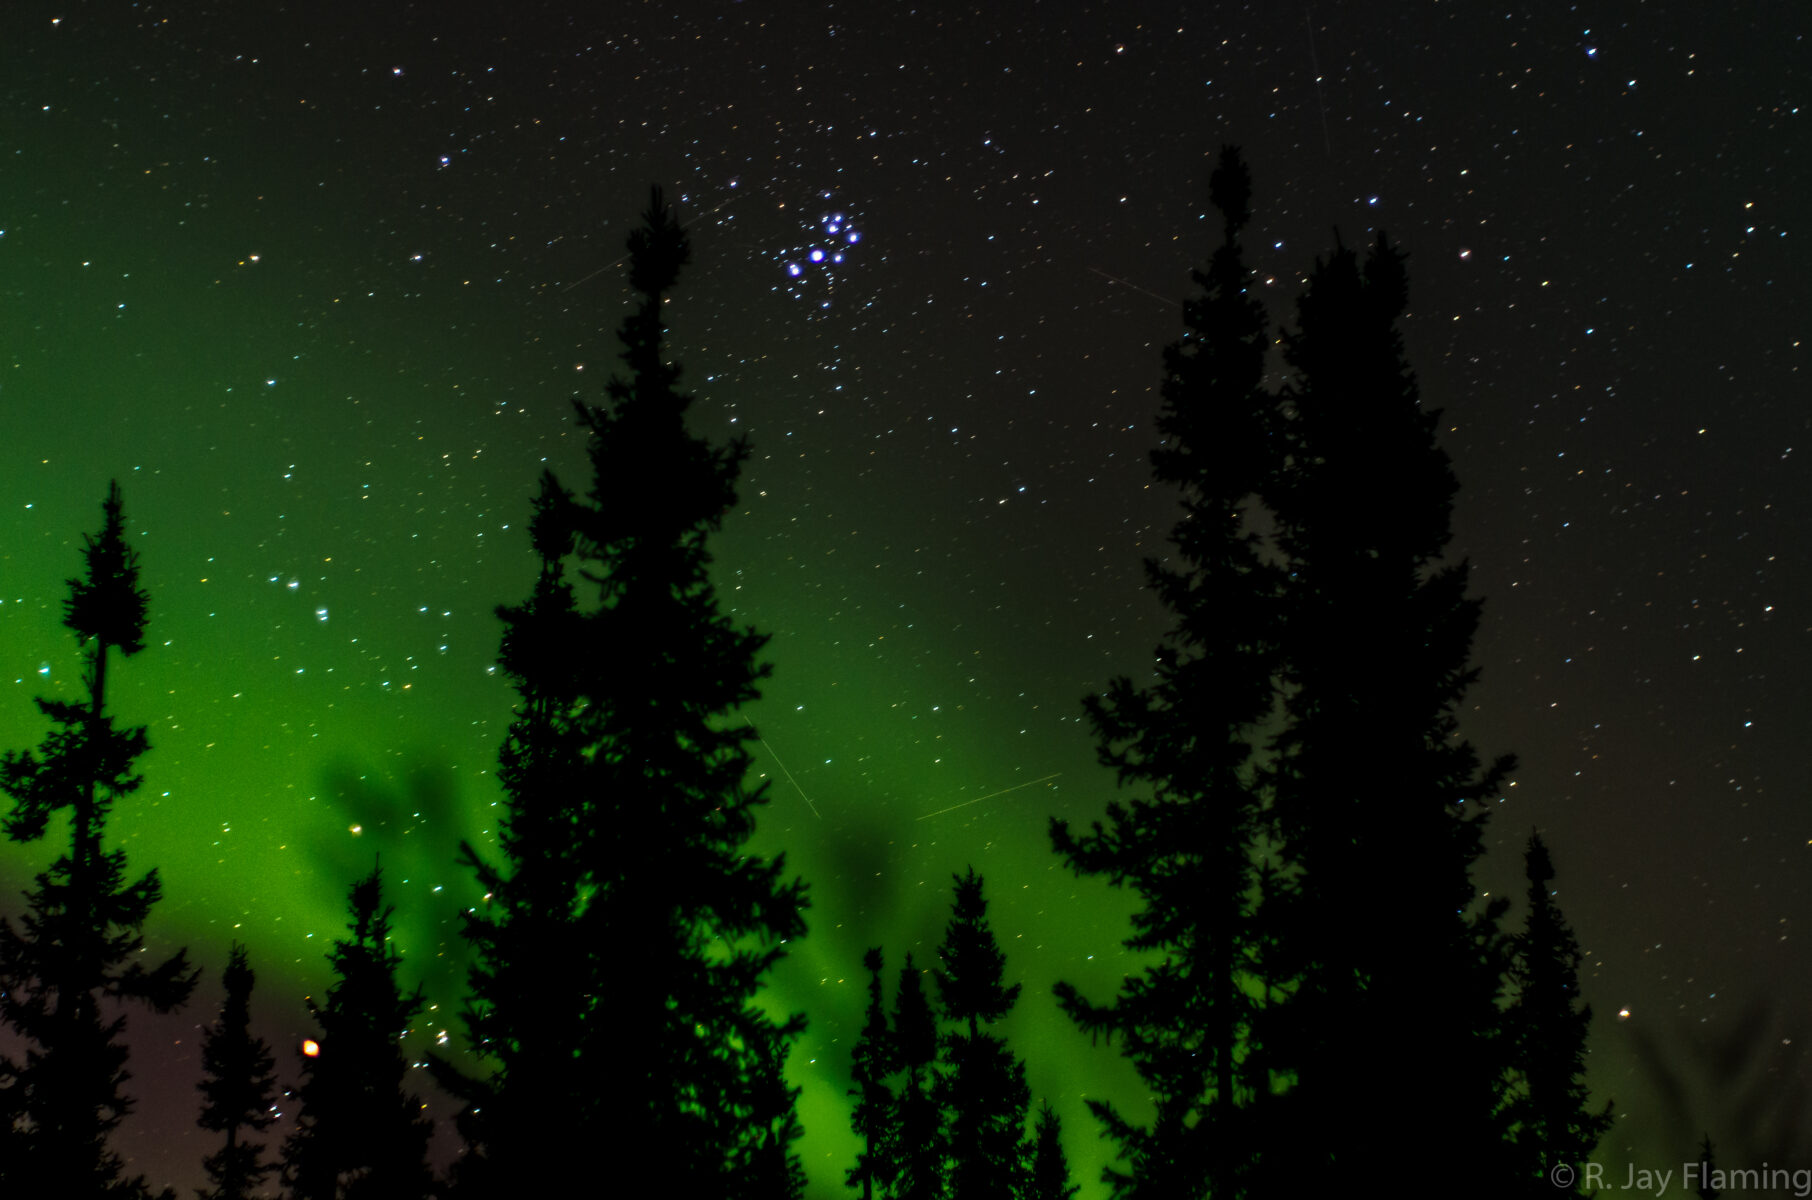 A display of green northern lights above black spruce trees against a background of stars in Fairbanks Alaska